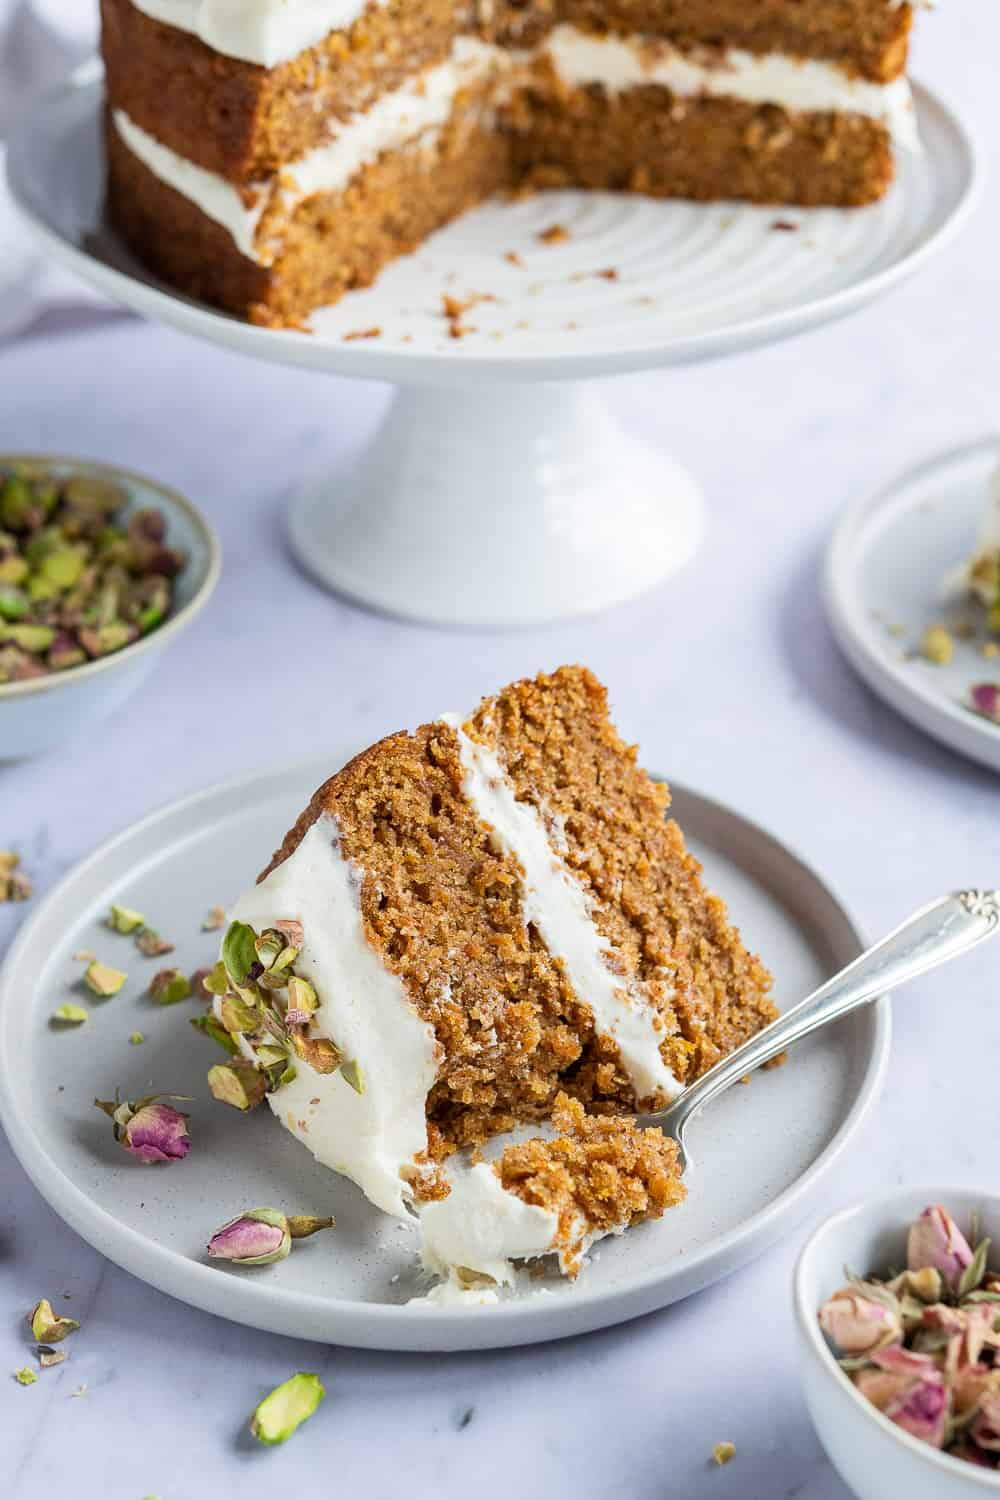 A slice of vegan carrot cake on a grey plate with a fork.